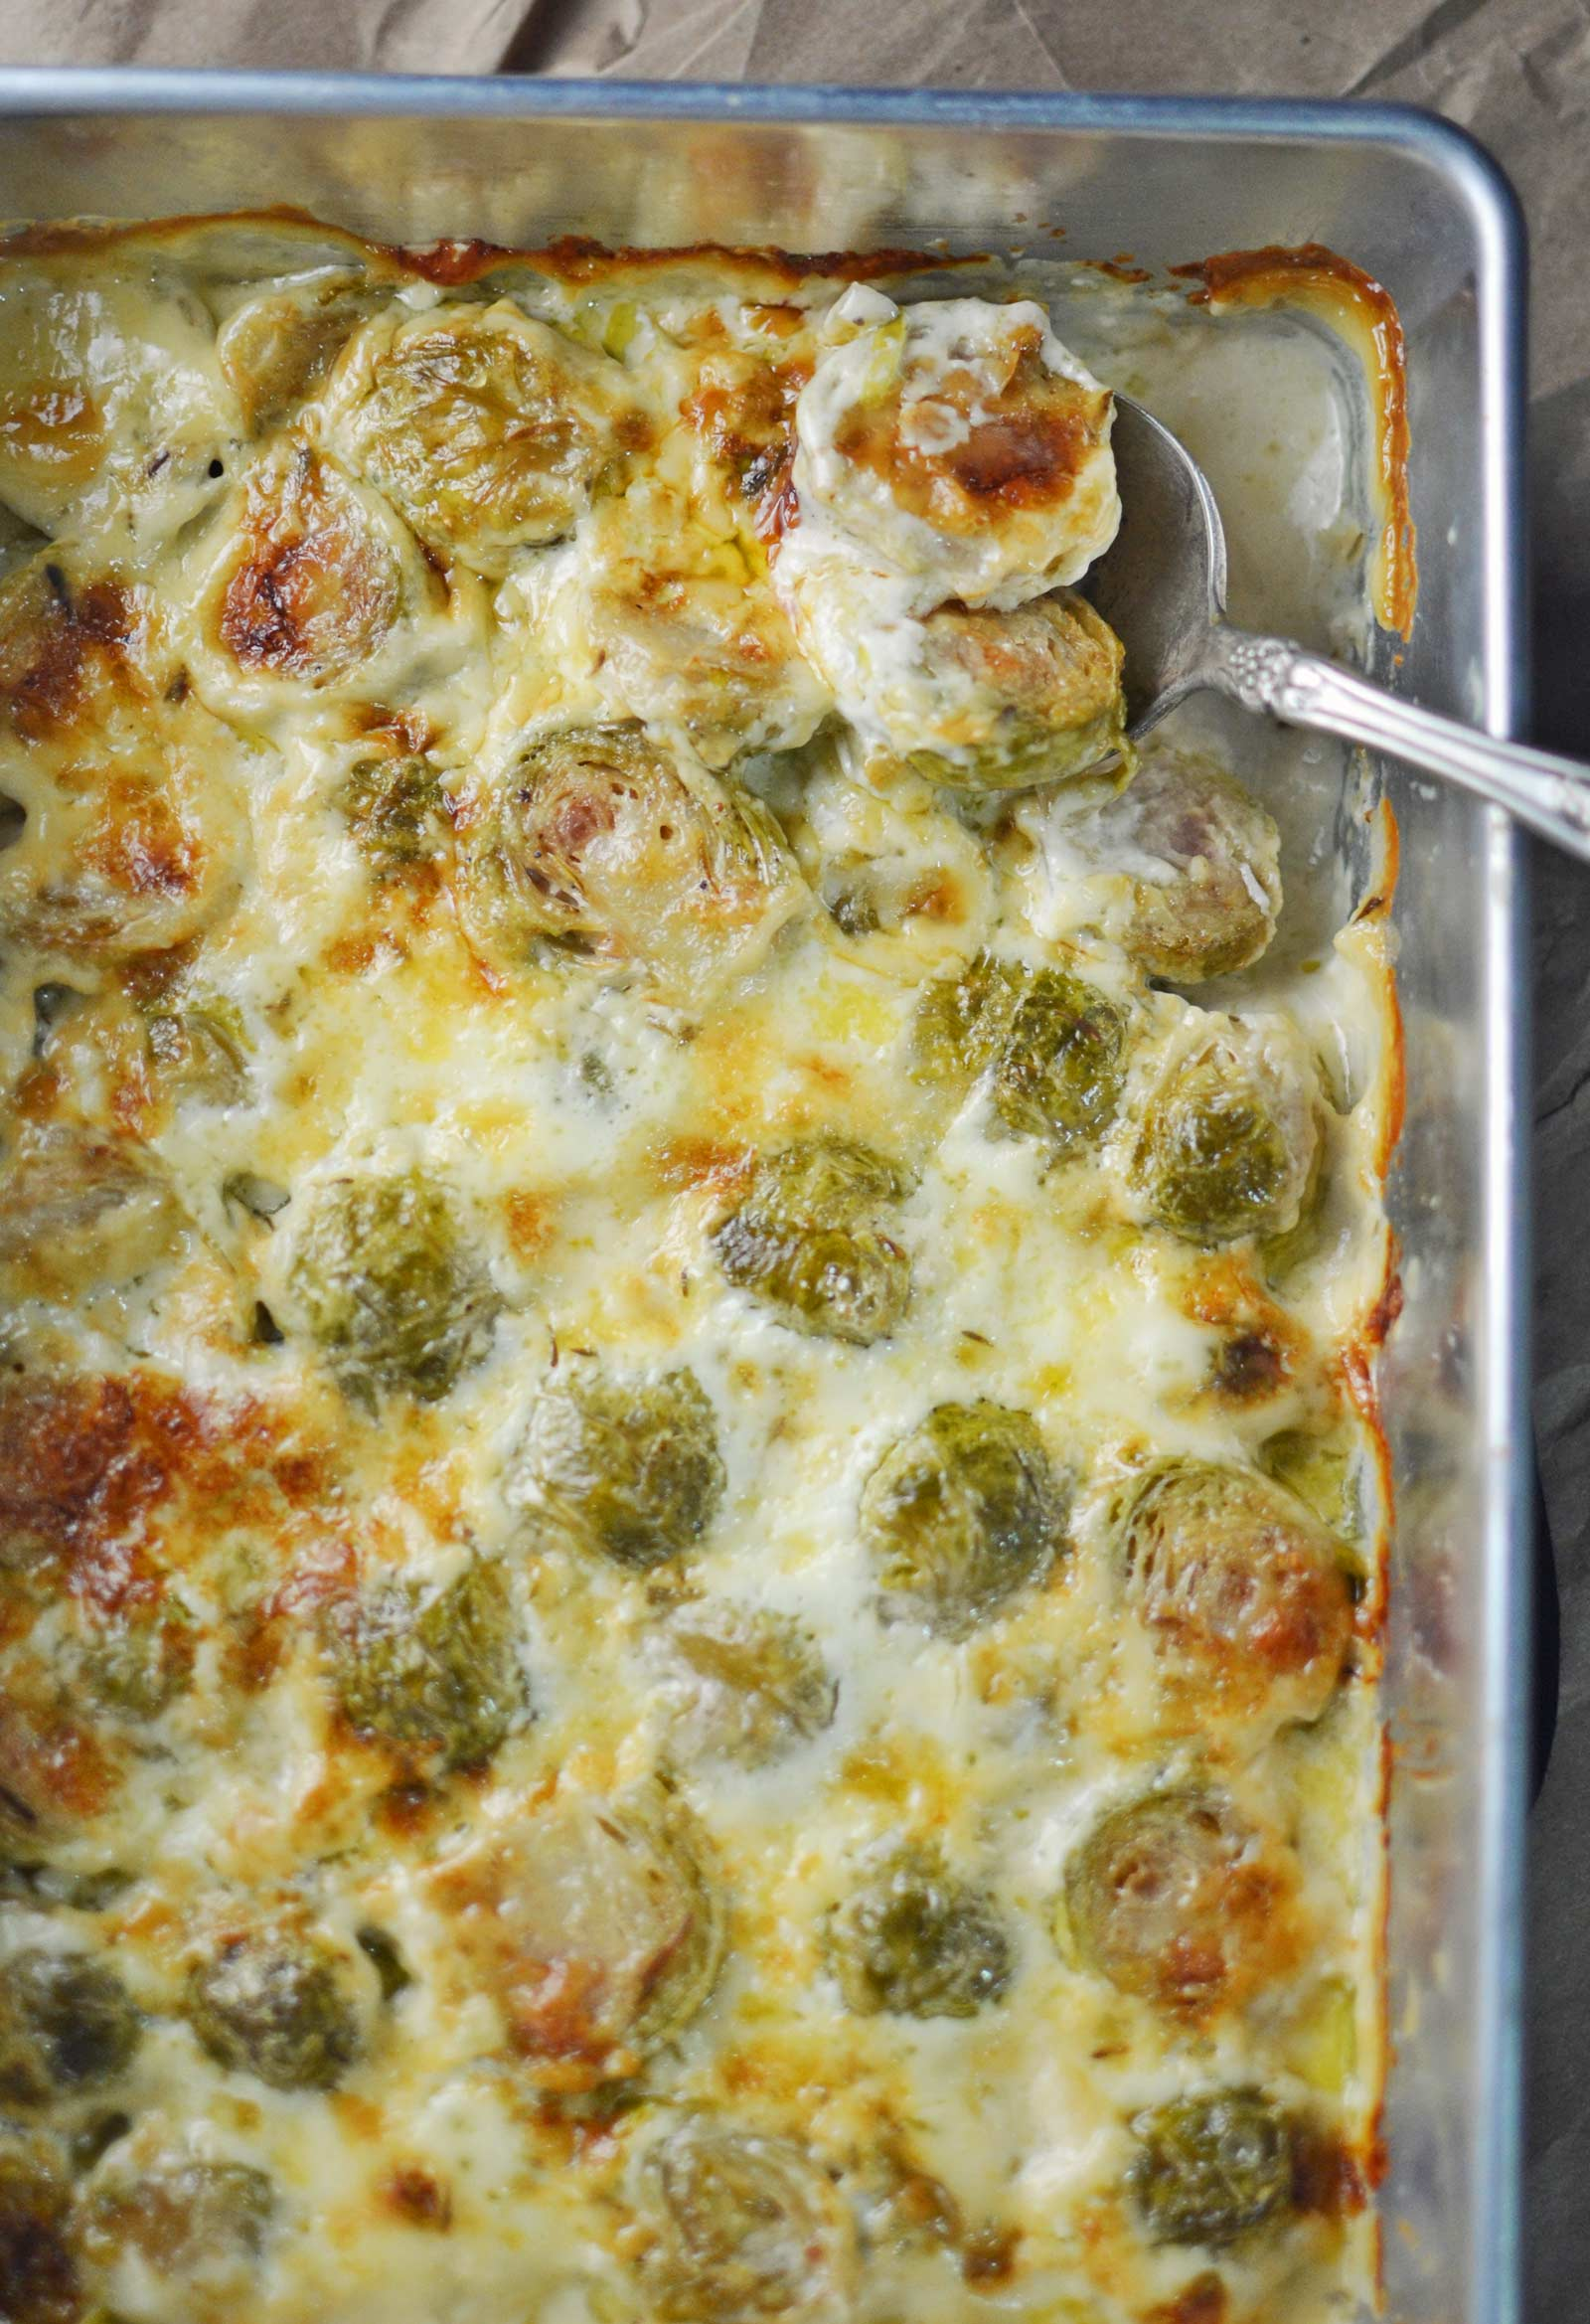 Creamy Brussel Sprouts Au Gratin - the perfect side dish for a simple weeknight dinner or during the Holidays for Thanksgiving, Christmas or New Year's! - Recipe @LittleFiggyFood